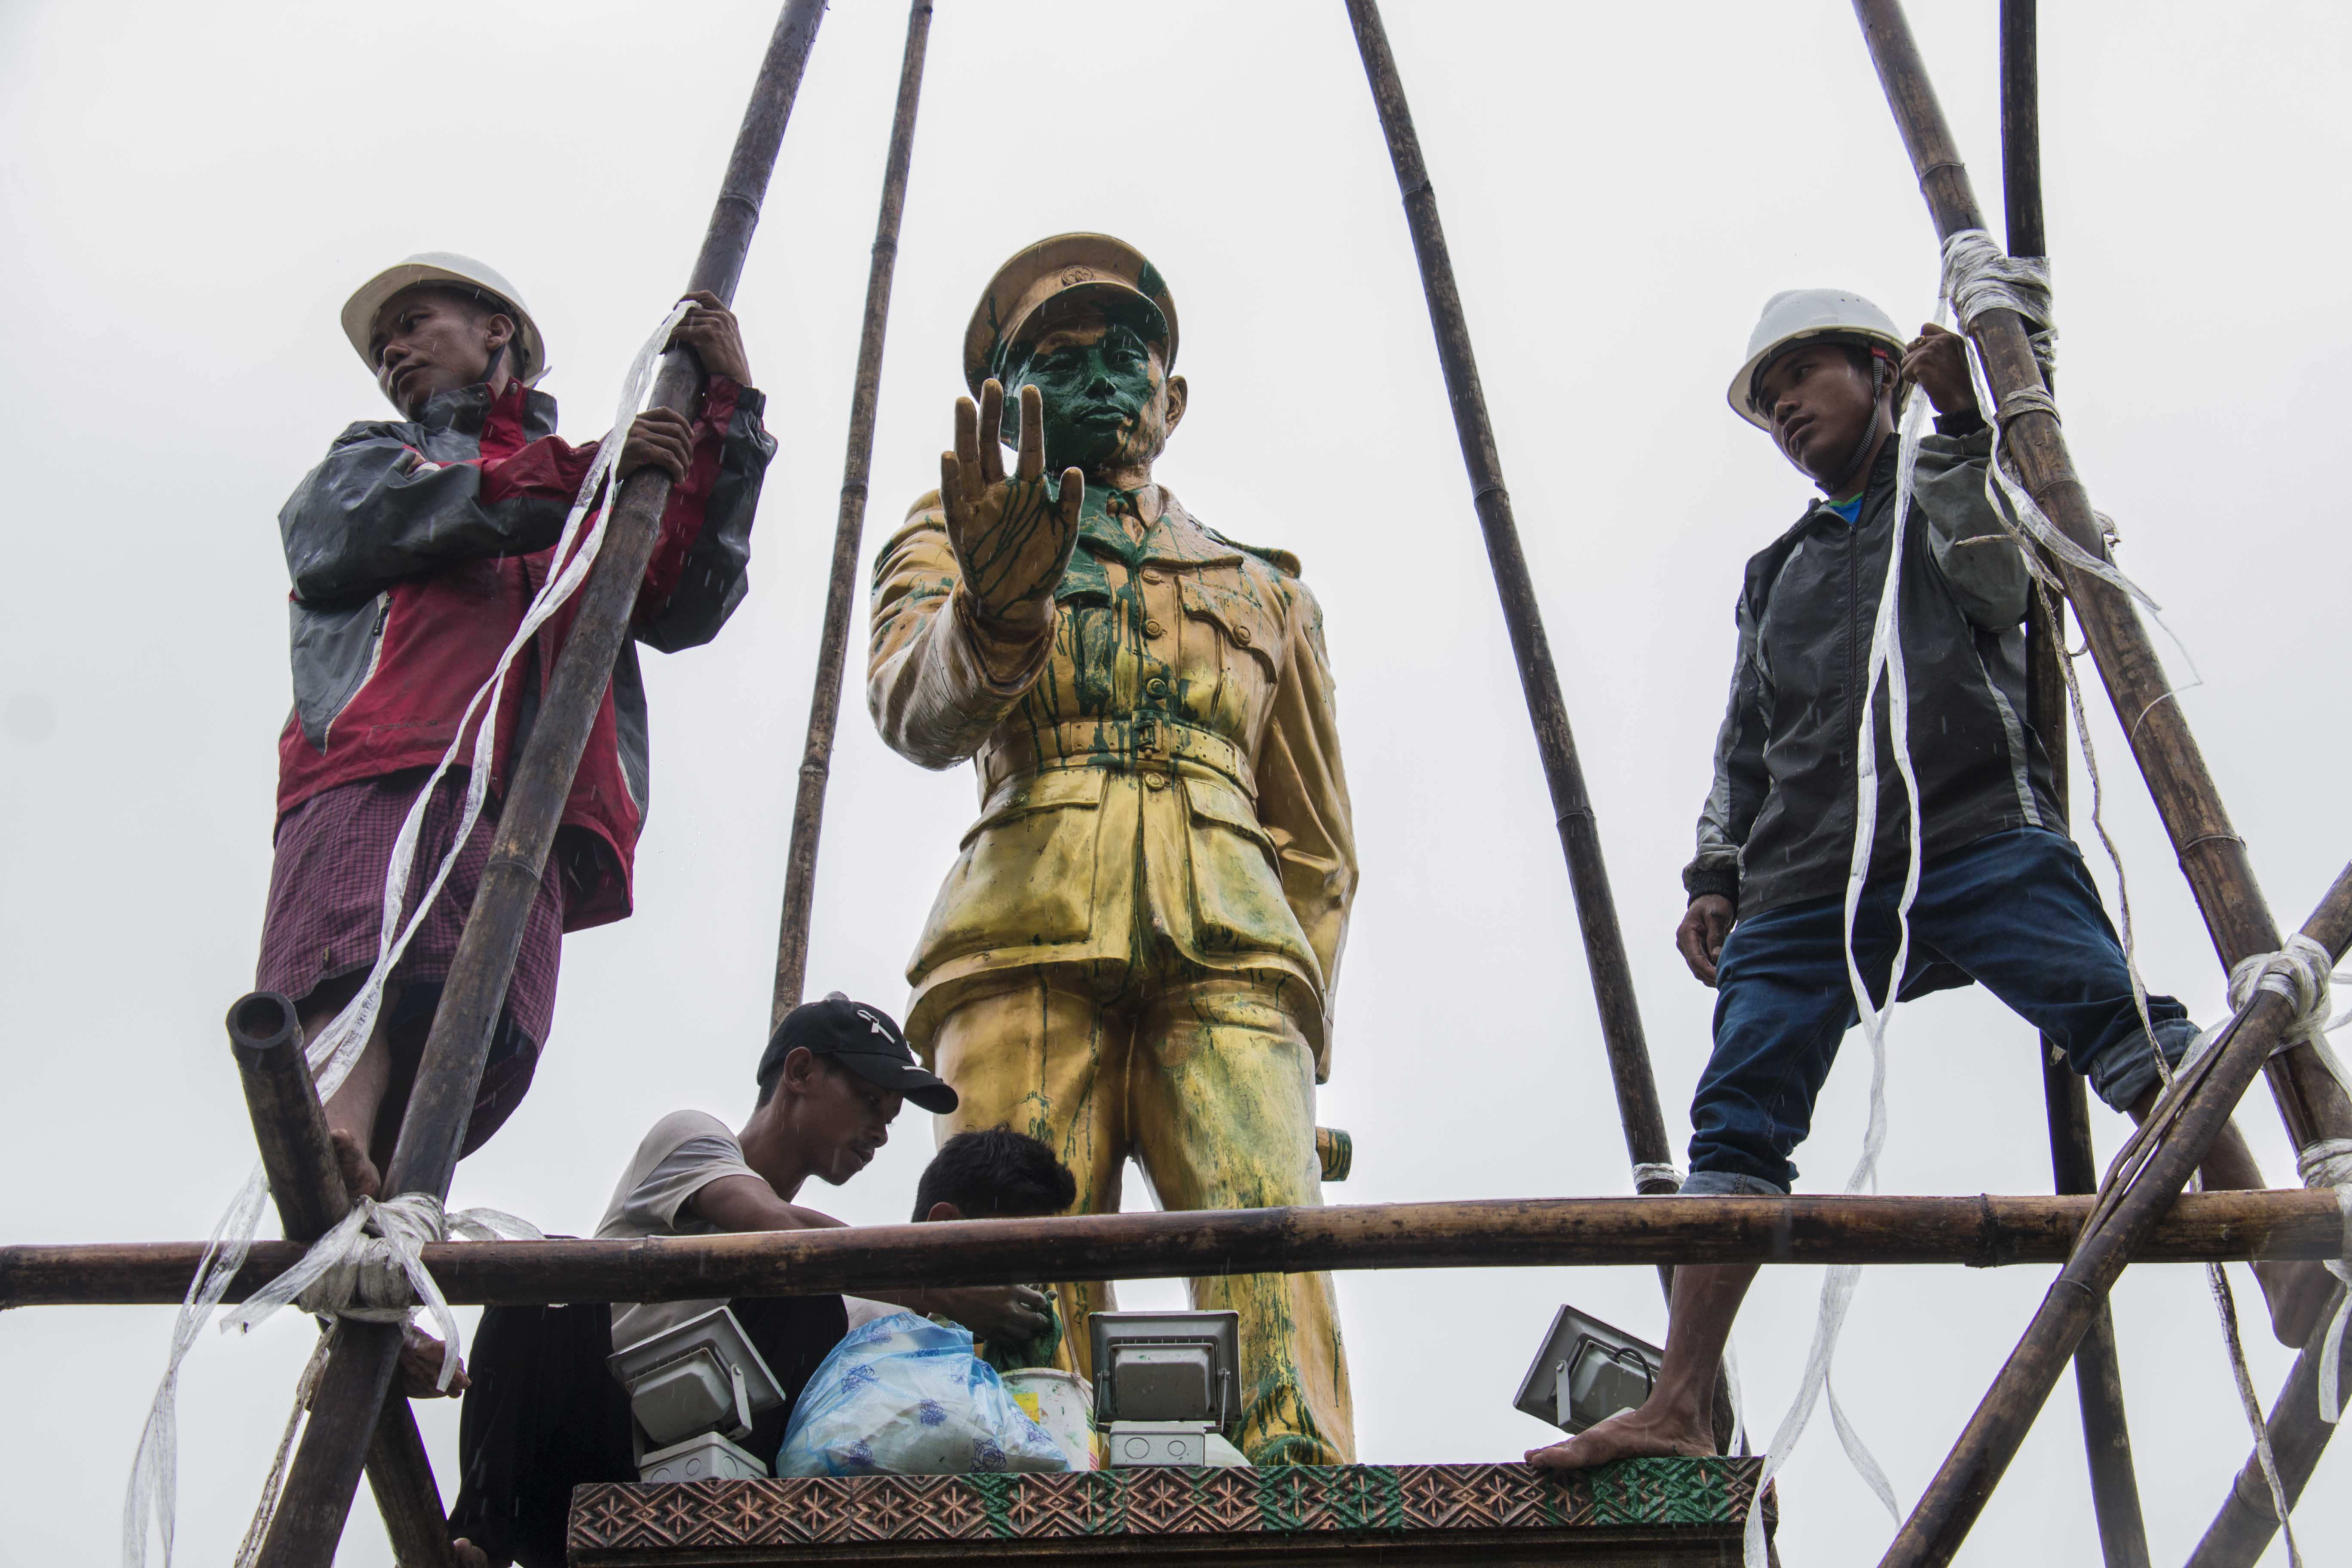 FILE - workers clean a vandalized statue of Myanmar independence hero Gen. Aung San, in Myitkyina, capital of Kachin state, Myanmar, July 23, 2018.